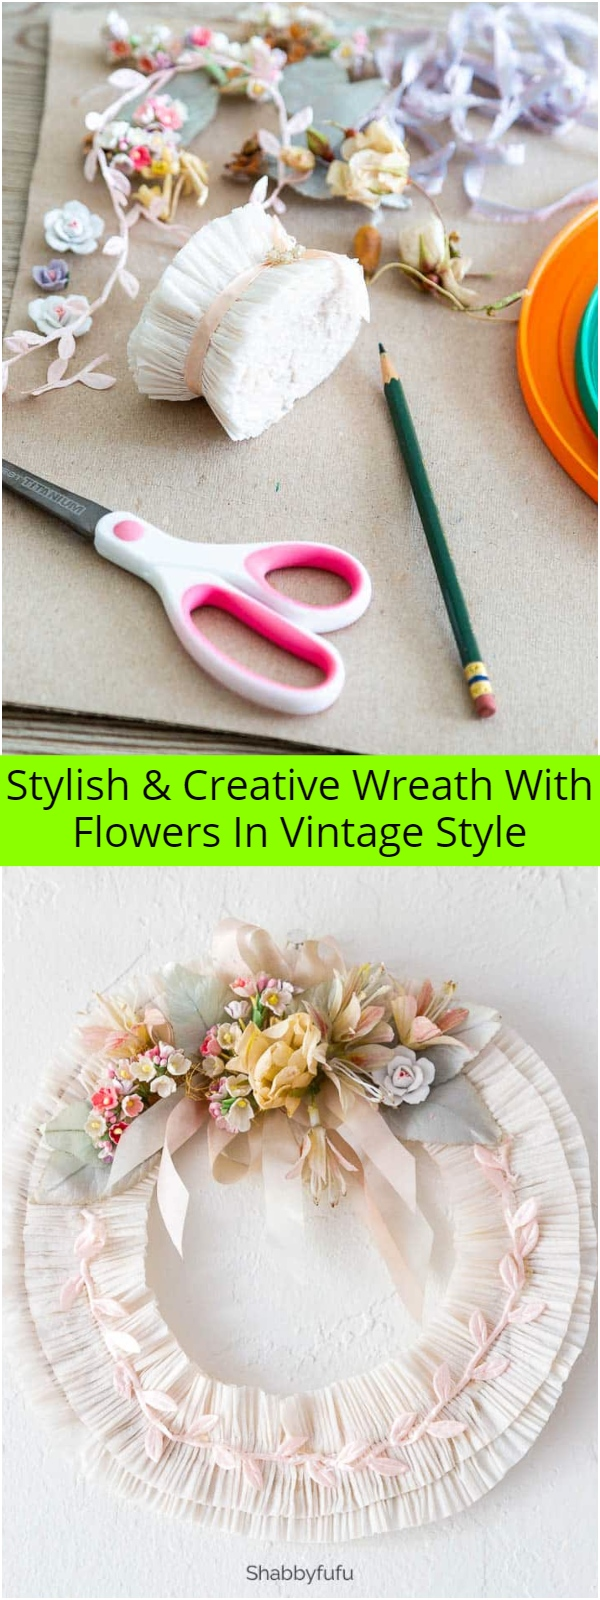 Stylish Creative Wreath With Flowers In Vintage Style